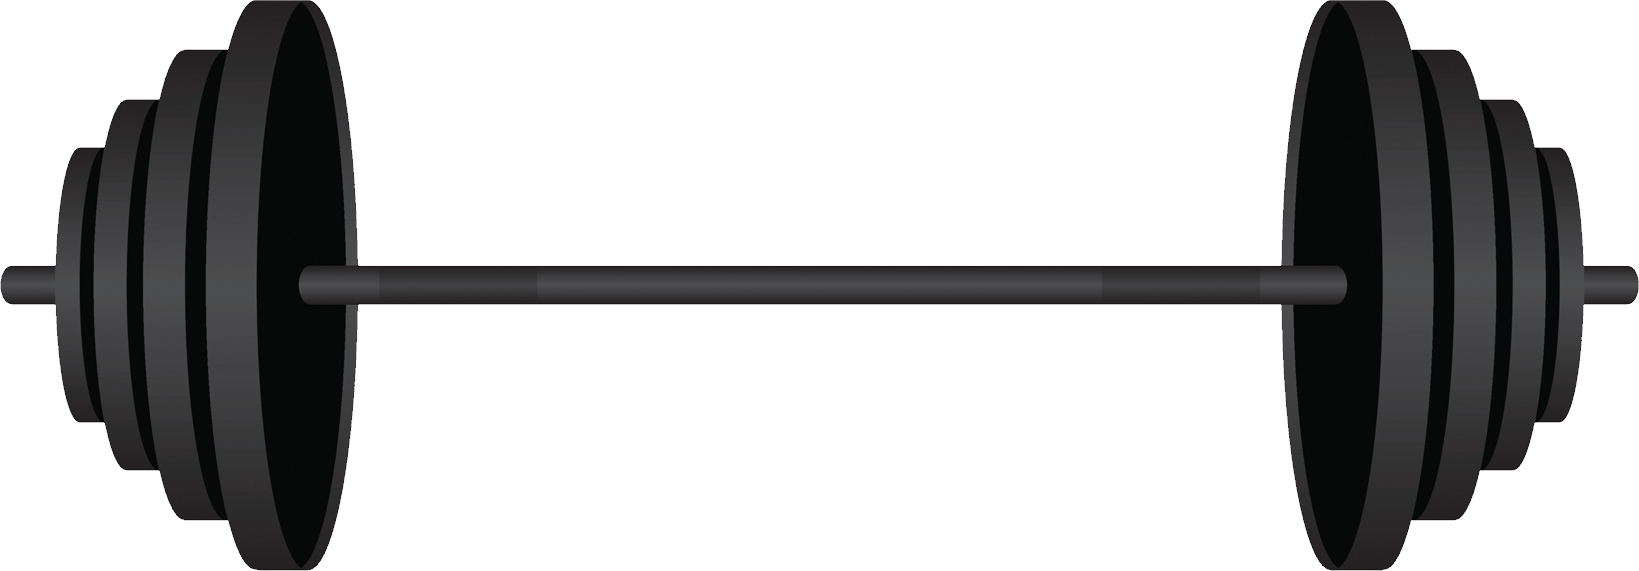 Transparent bars weight. Barbell png images free